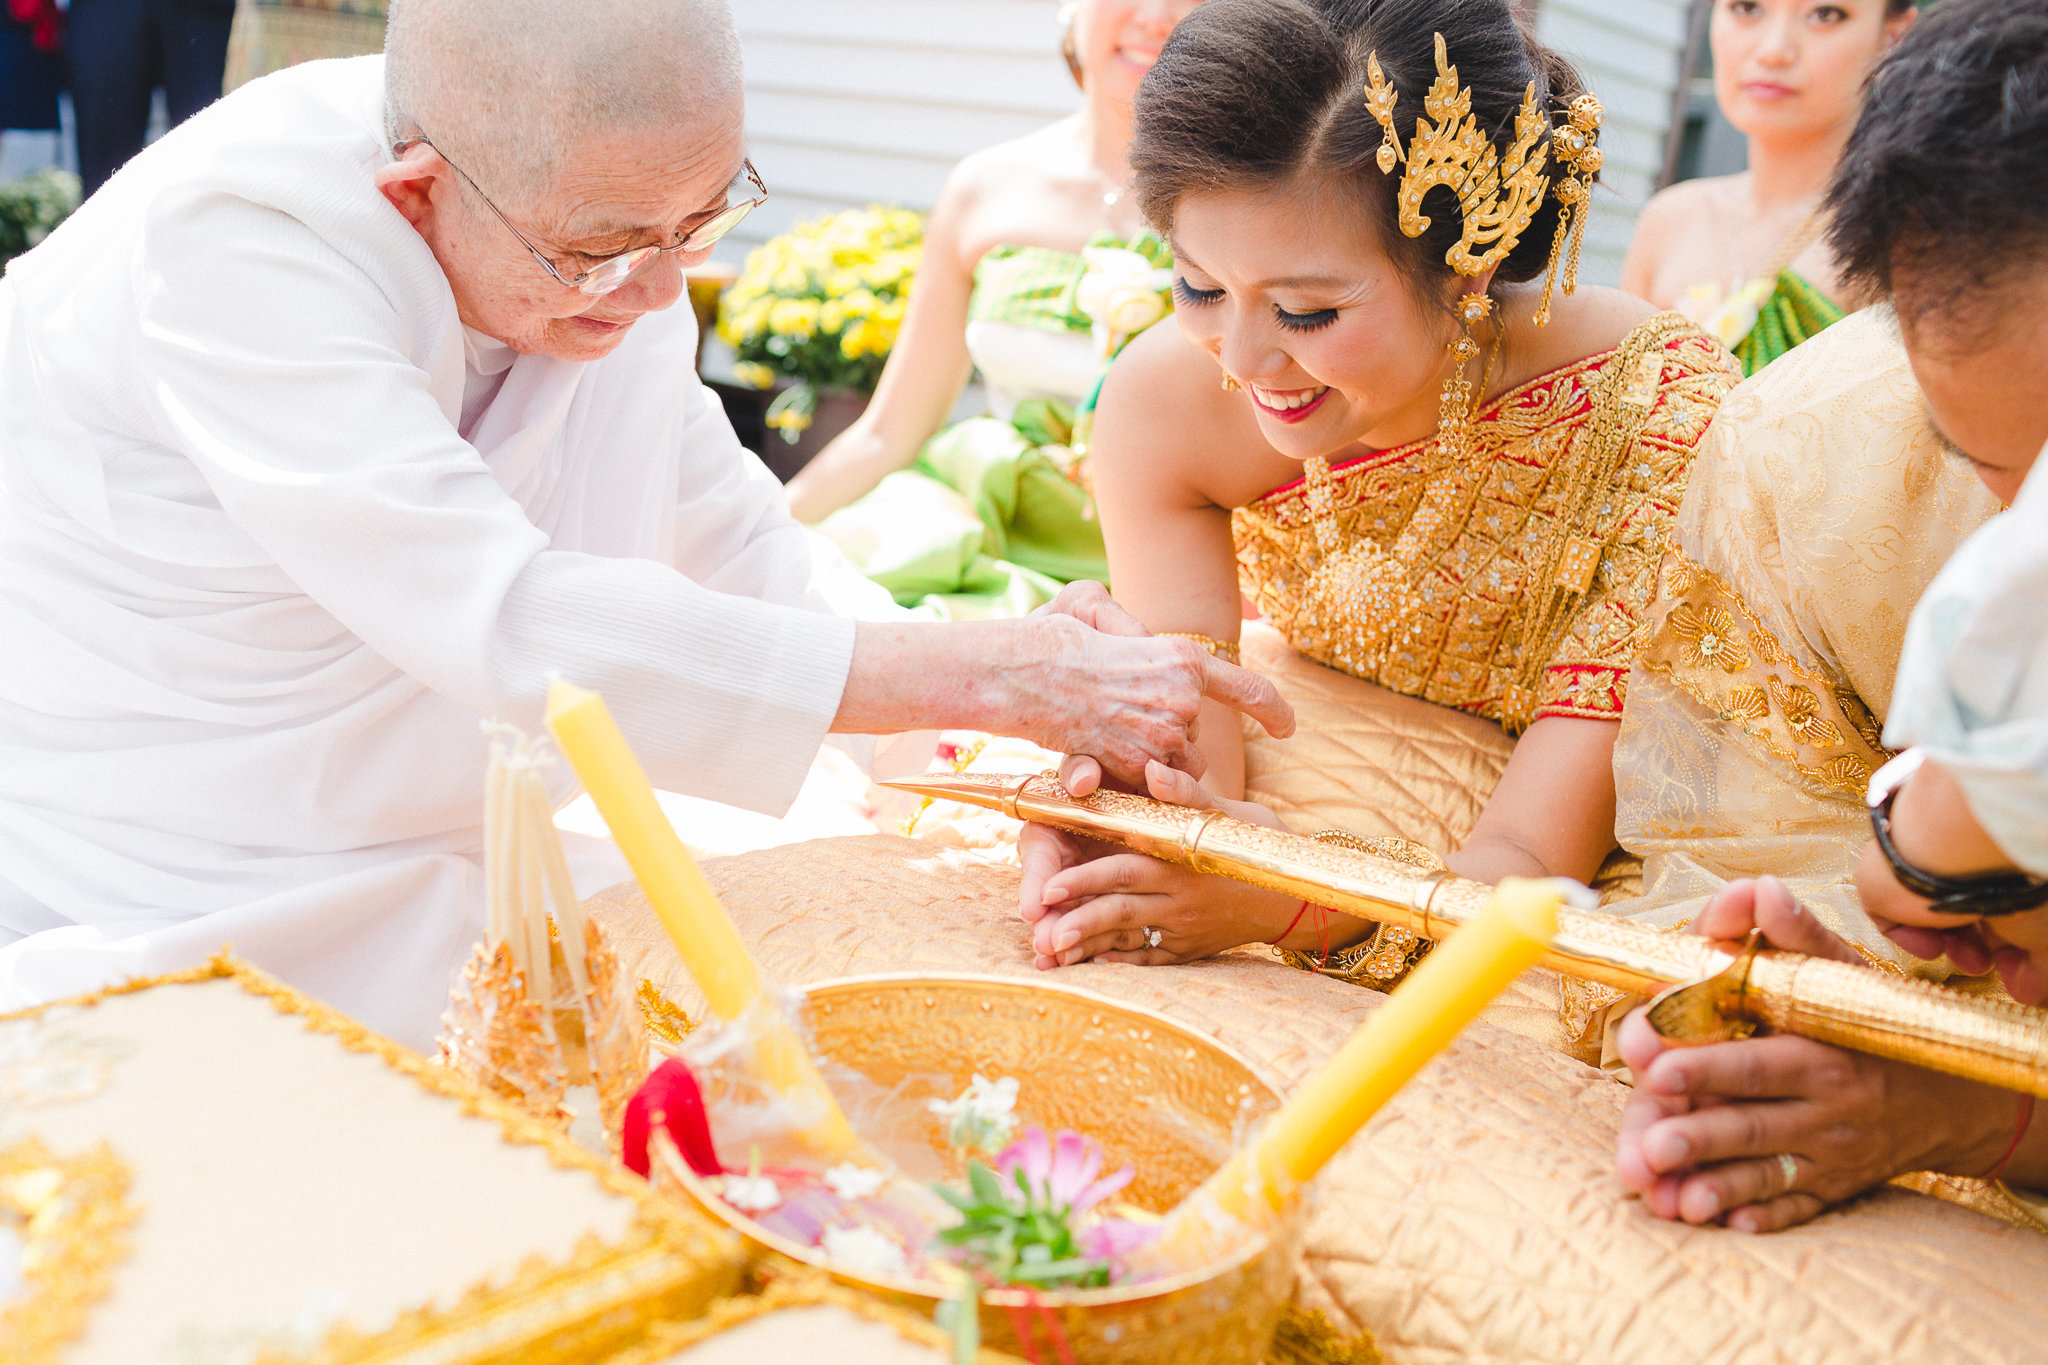 photographe-montreal-mariage-culturel-traditionnel-cambodgien-lisa-renault-photographie-traditional-cultural-cambodian-wedding-59